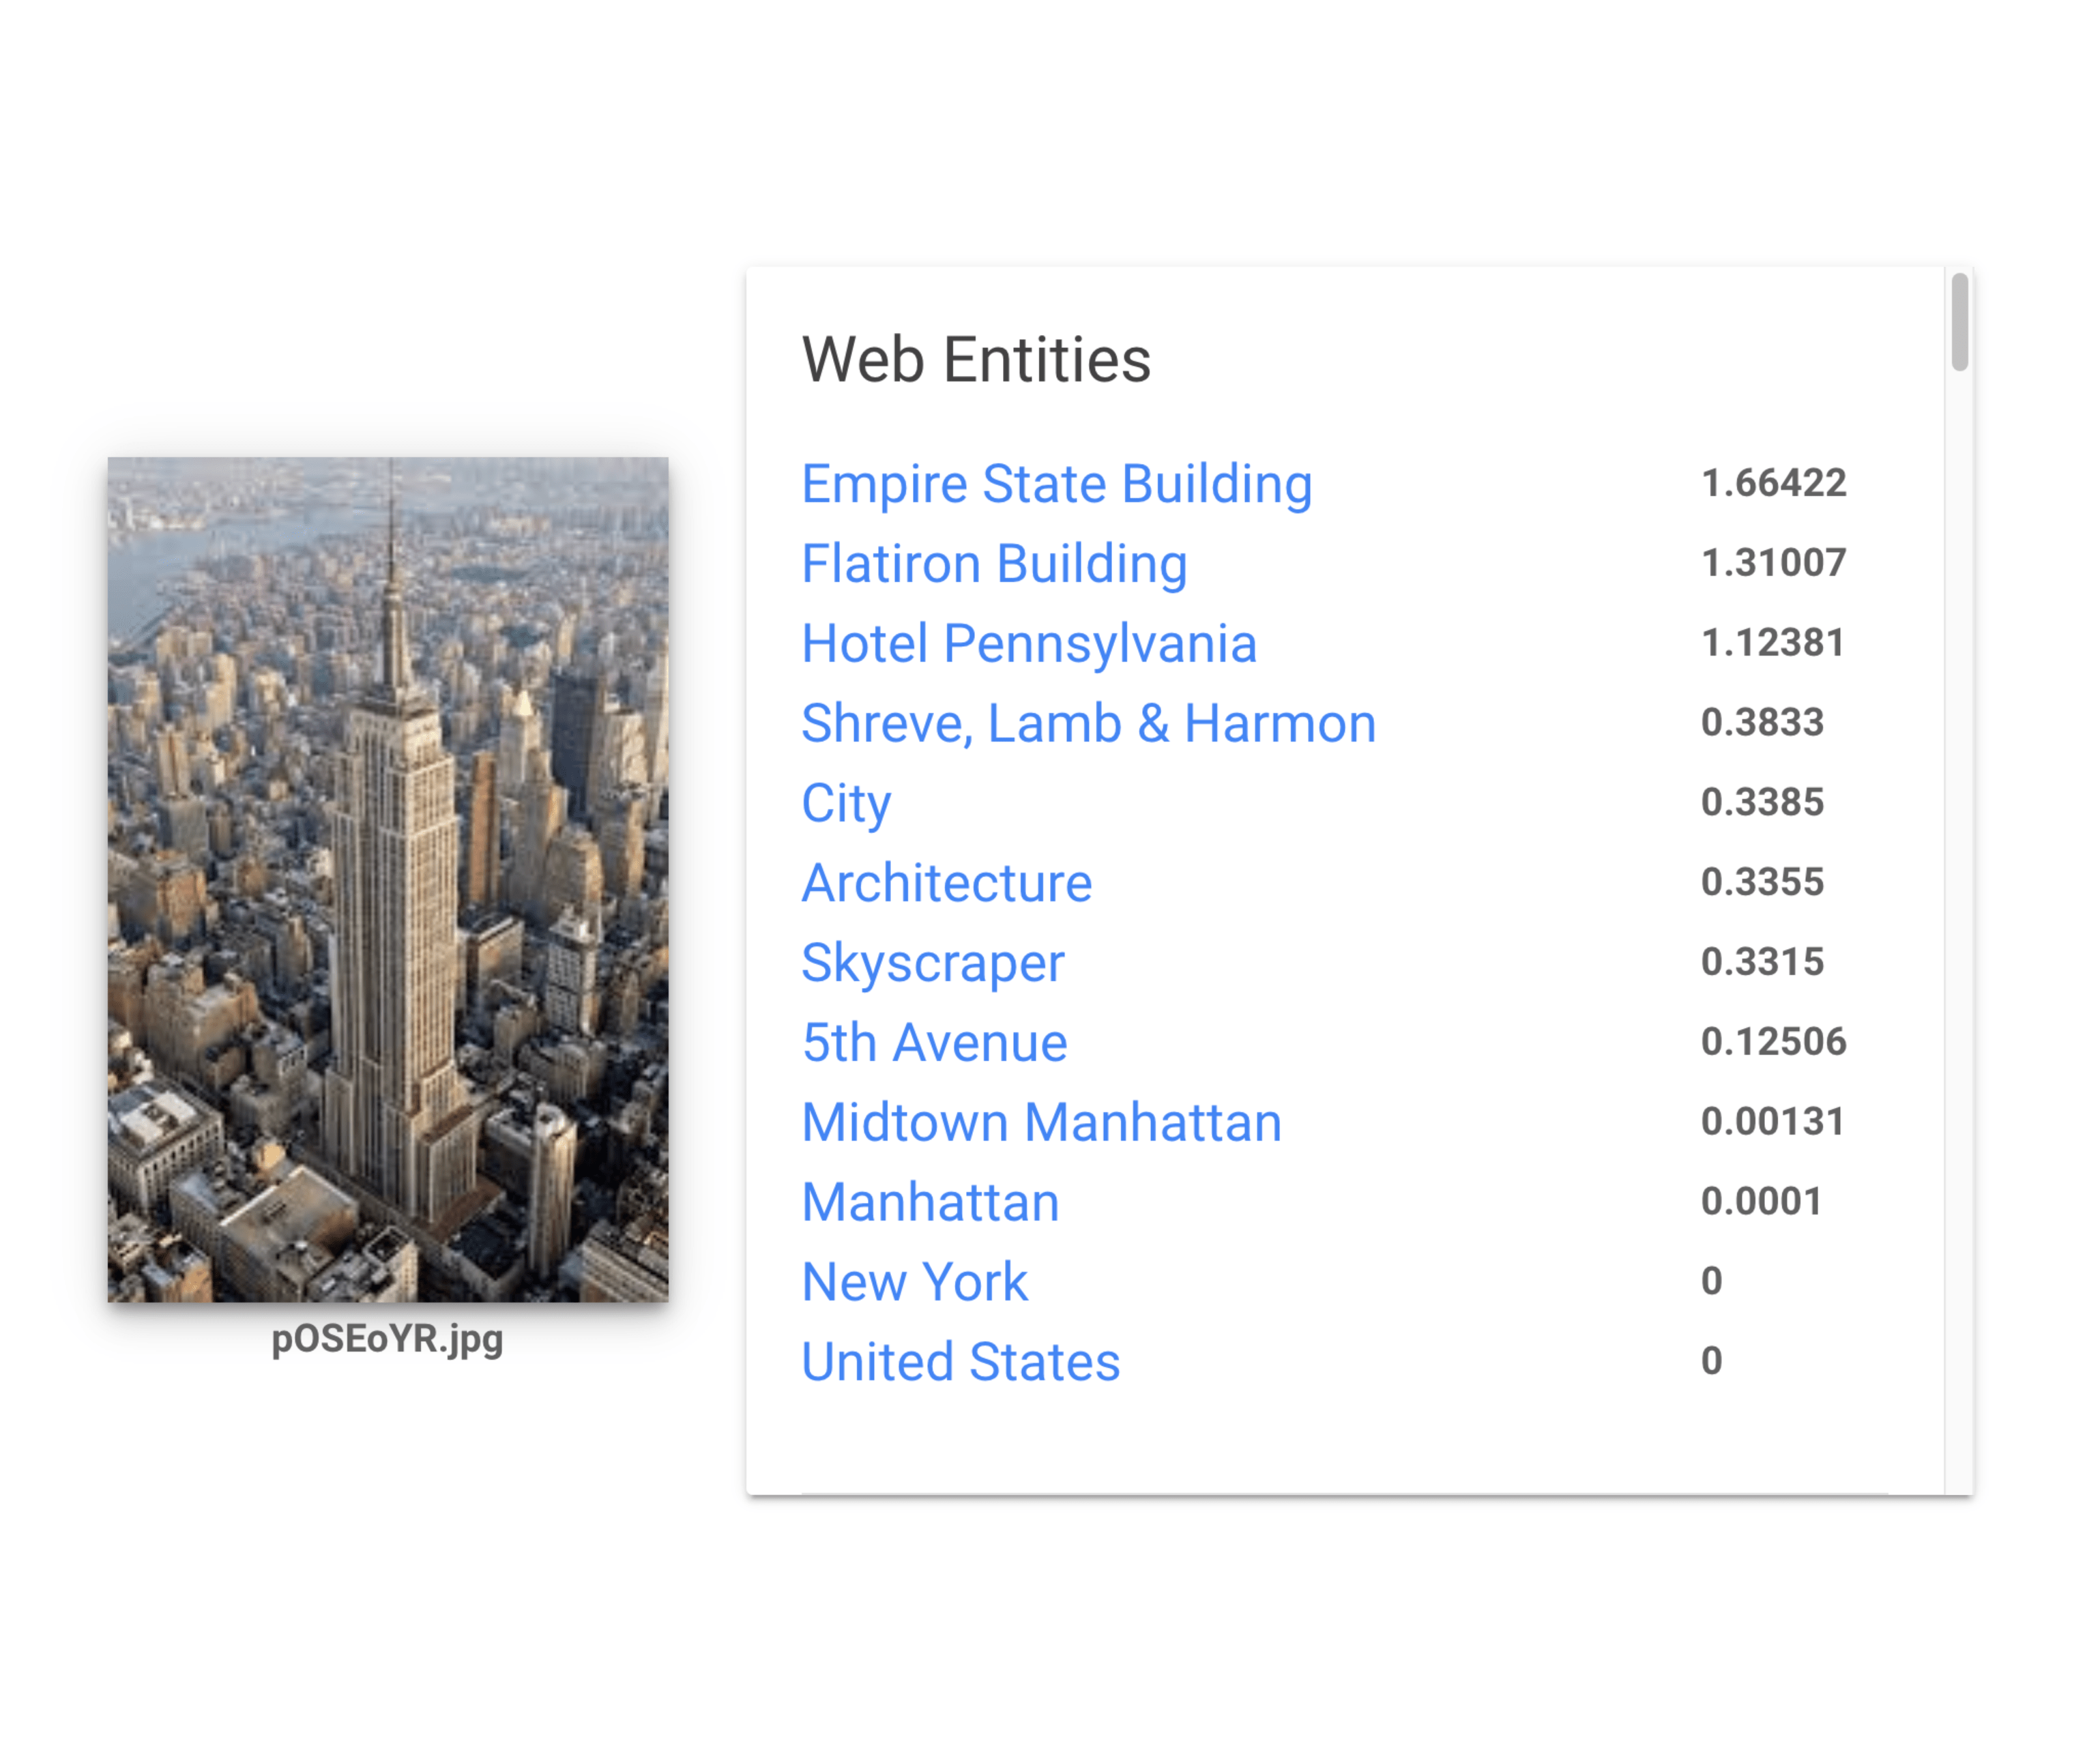 Google Vision API – Web Entities Empire State Building